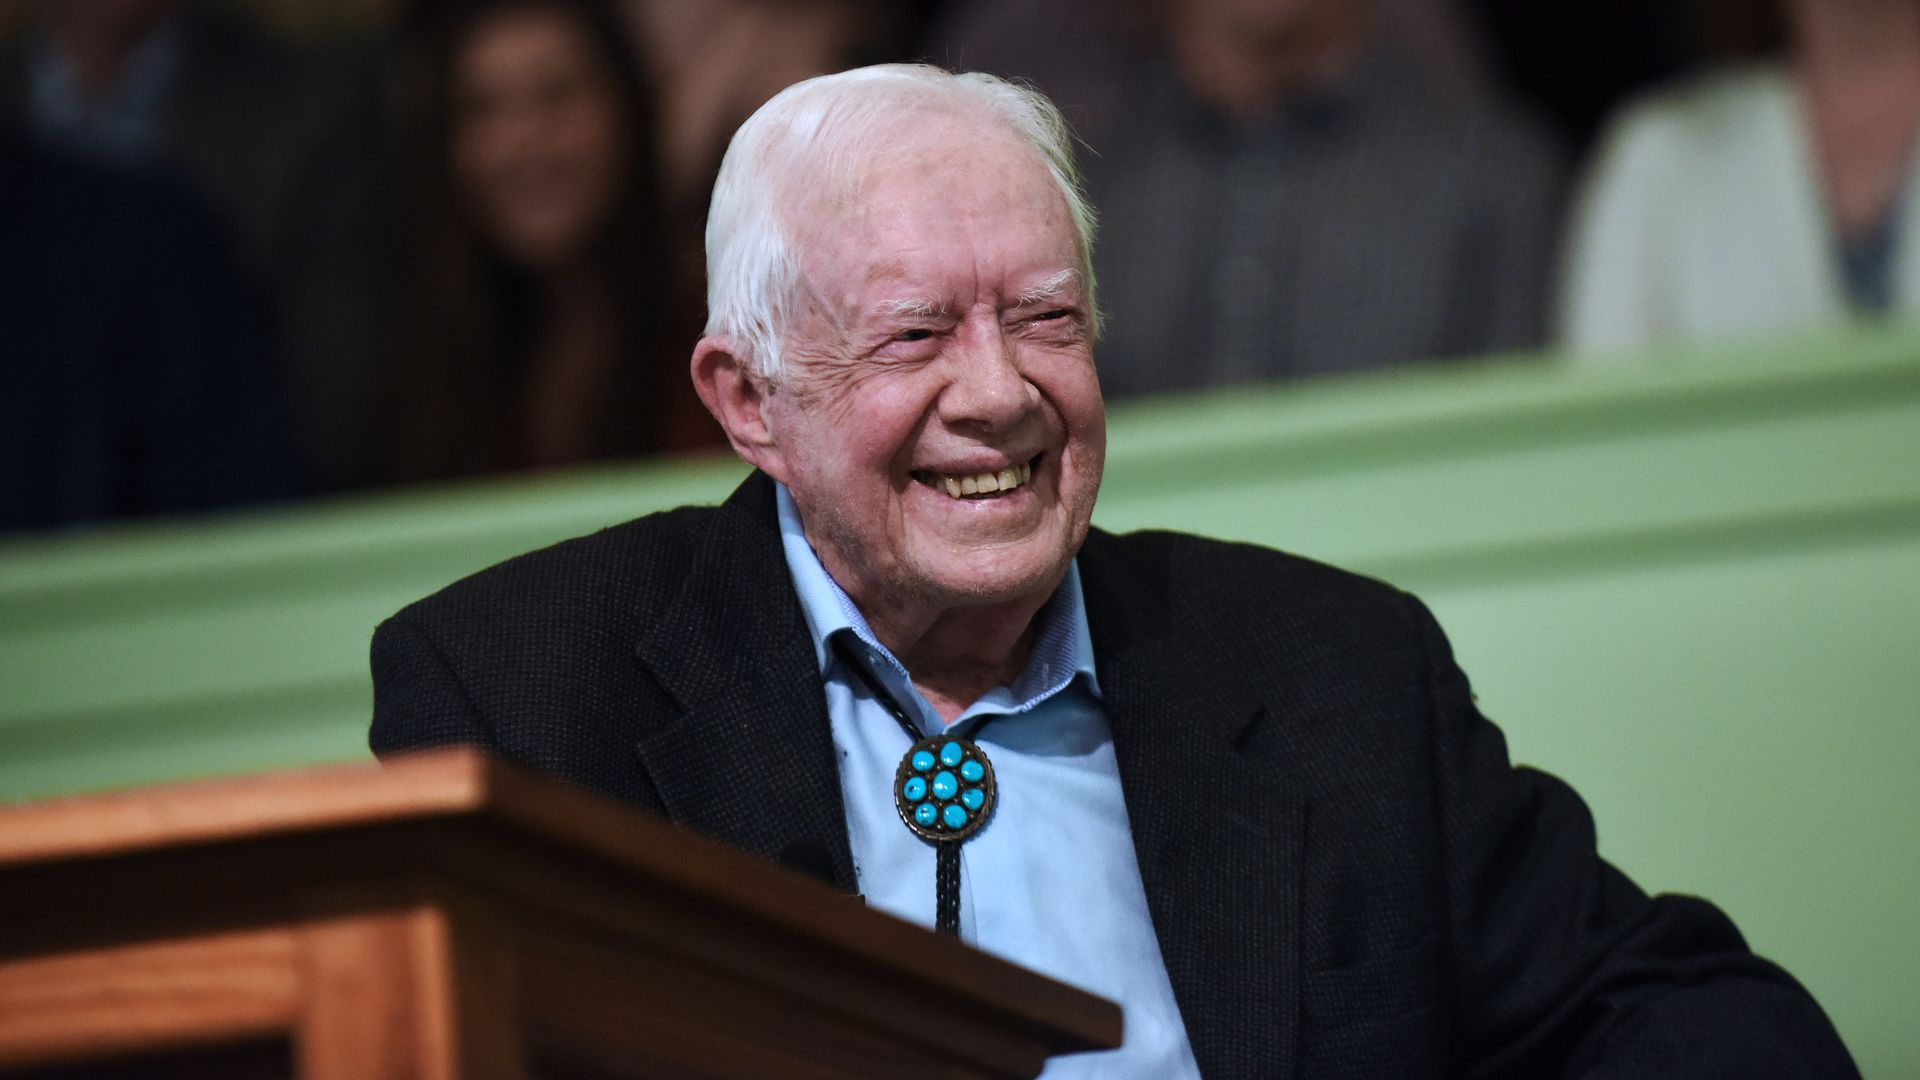 Jimmy Carter speaks to the congregation at Maranatha Baptist Church before teaching Sunday school in his hometown of Plains, Georgia